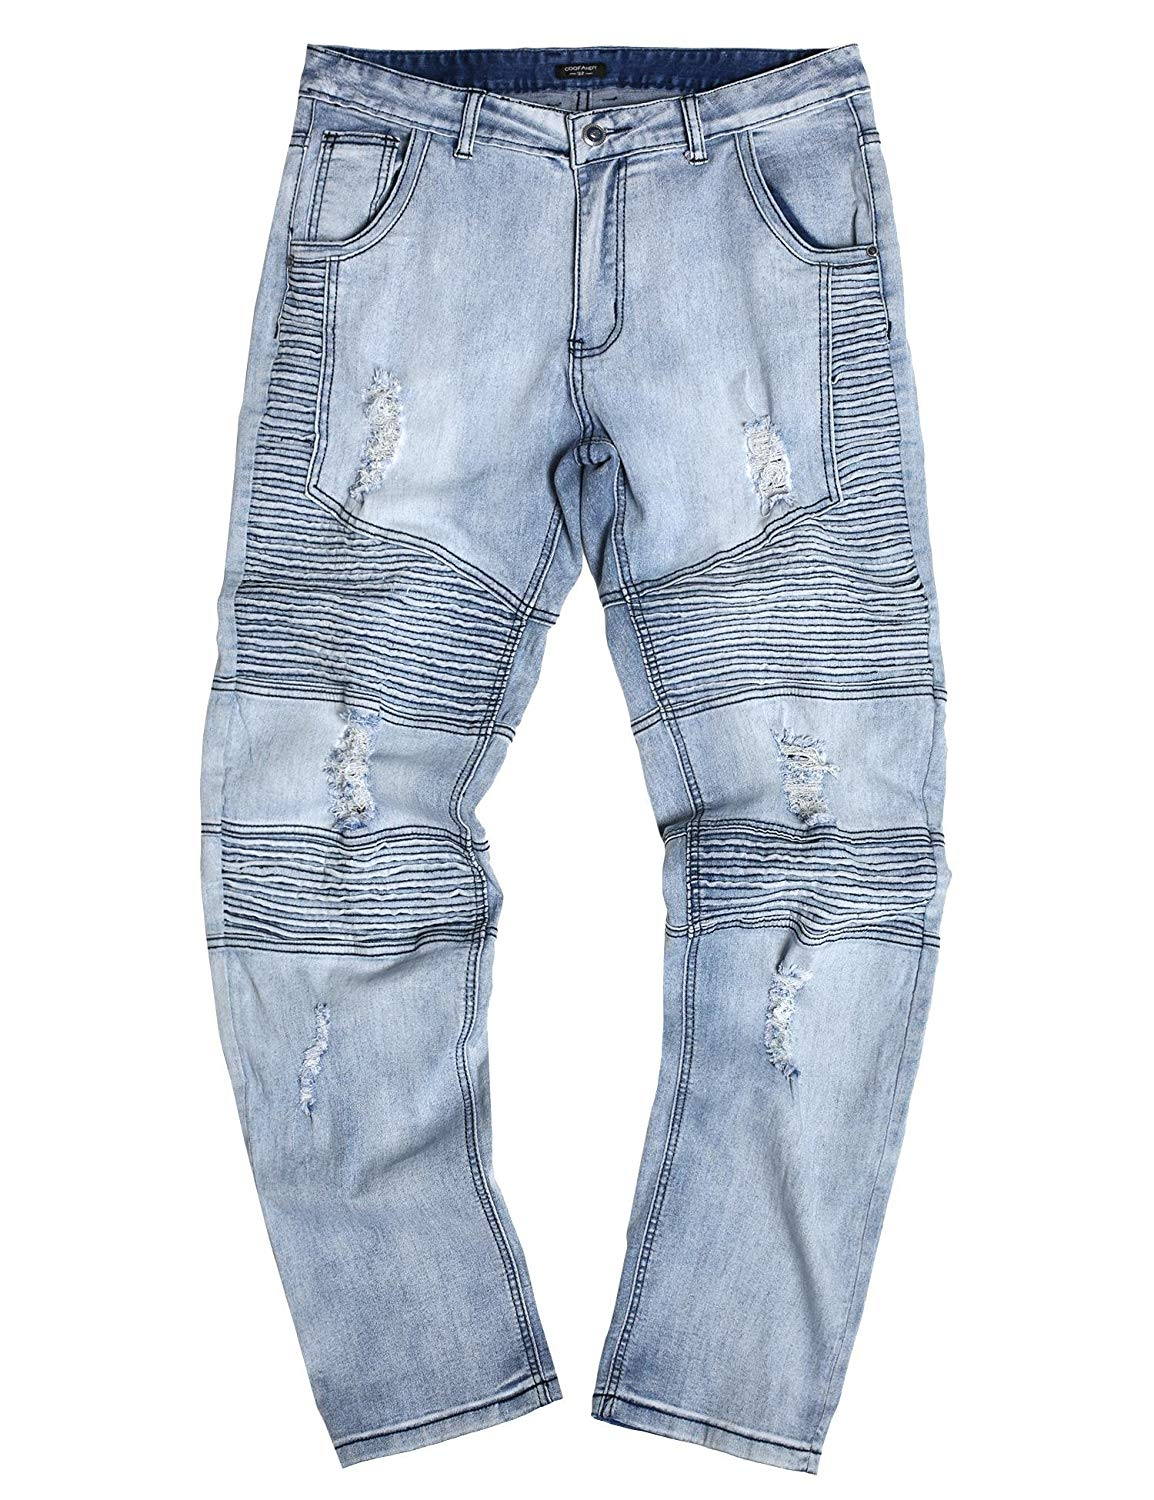 cee01458aa7 Get Quotations · carsget Distressed Destroyed Straight Jeans with Holes Slim  Zipper Biker Jeans Men Ripped Jeans chaep Men